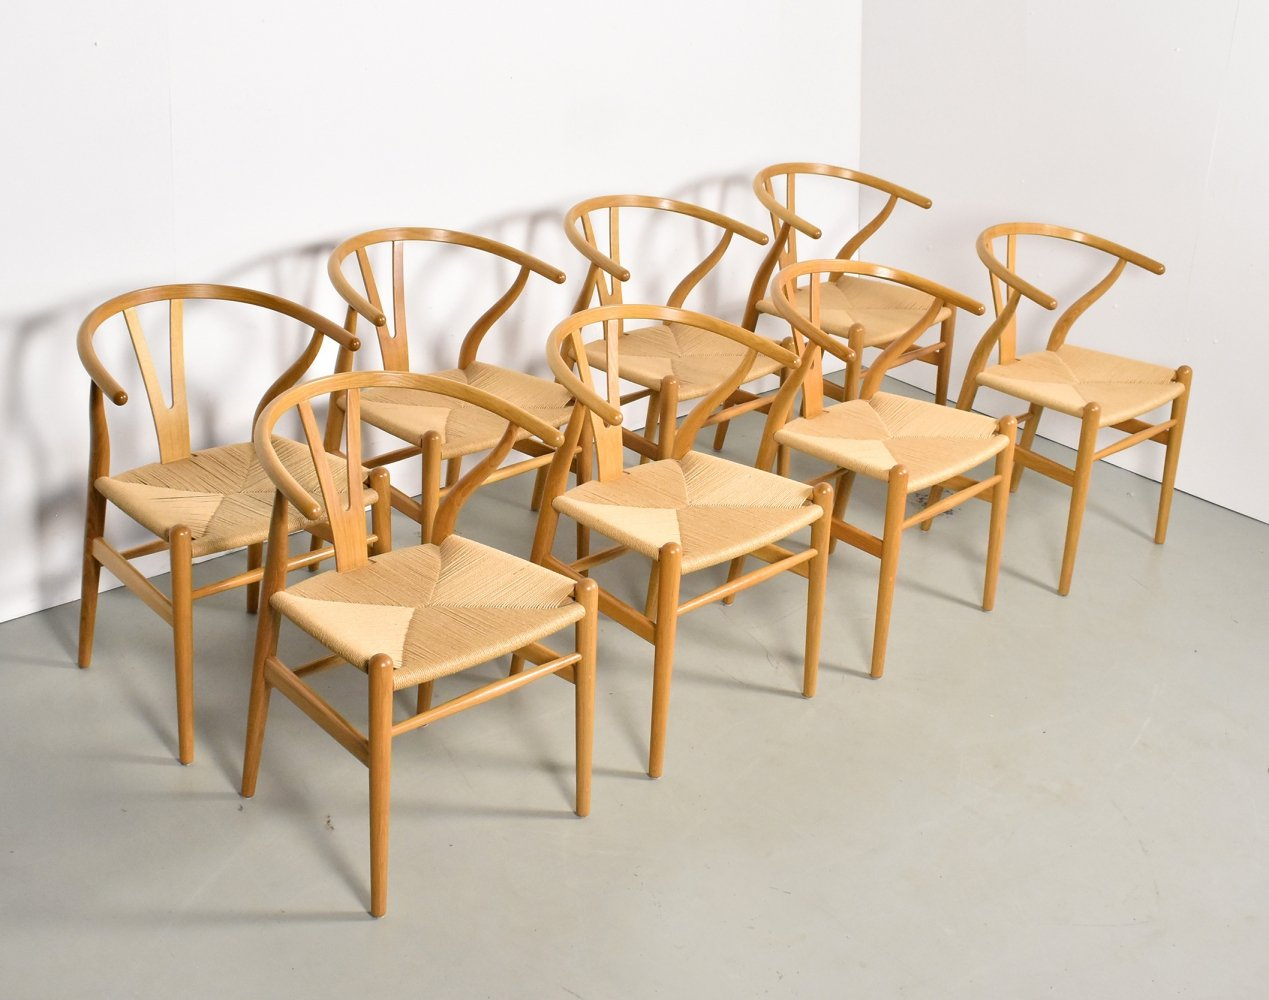 Set of 8 CH24 Wishbone dining chairs by Hans Wegner for Carl Hansen & Søn, 1990s